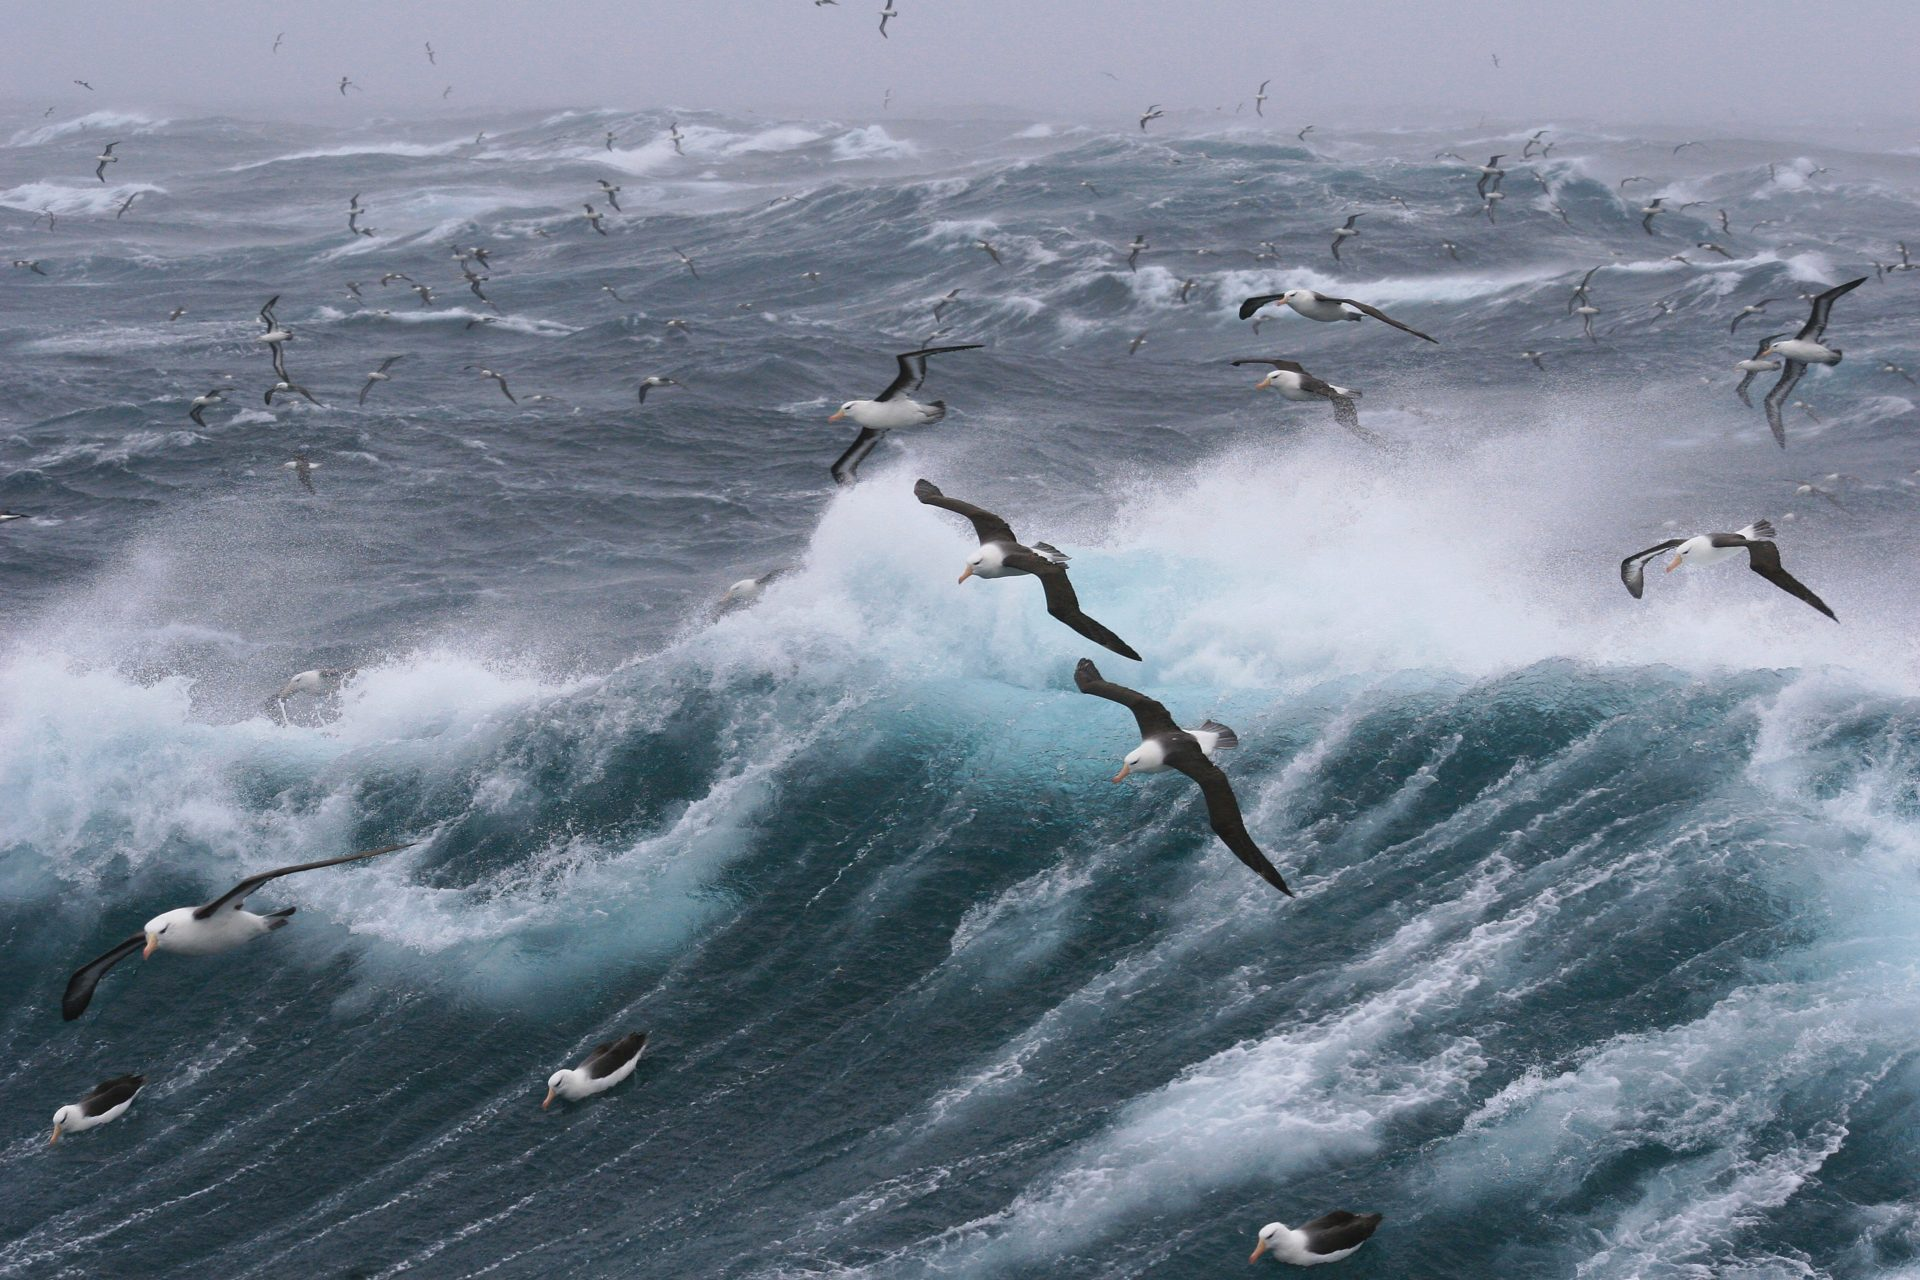 seal gulls flying over raging sea